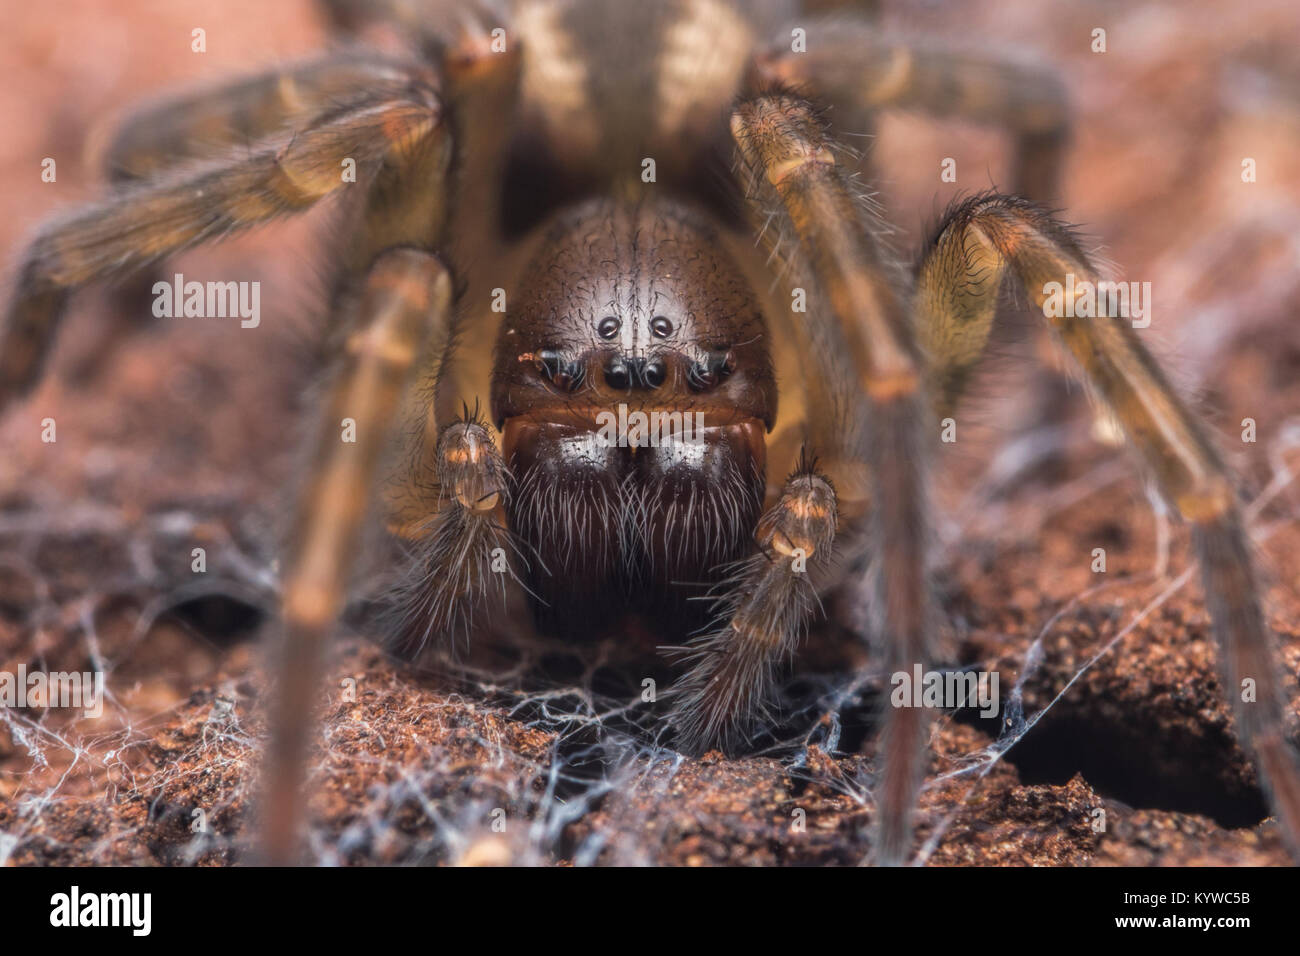 Lace-web Spider or Lace Weaver Spider (Amaurobius fenestralis). Close up macro photo of its head. Cahir, Tipperary, - Stock Image